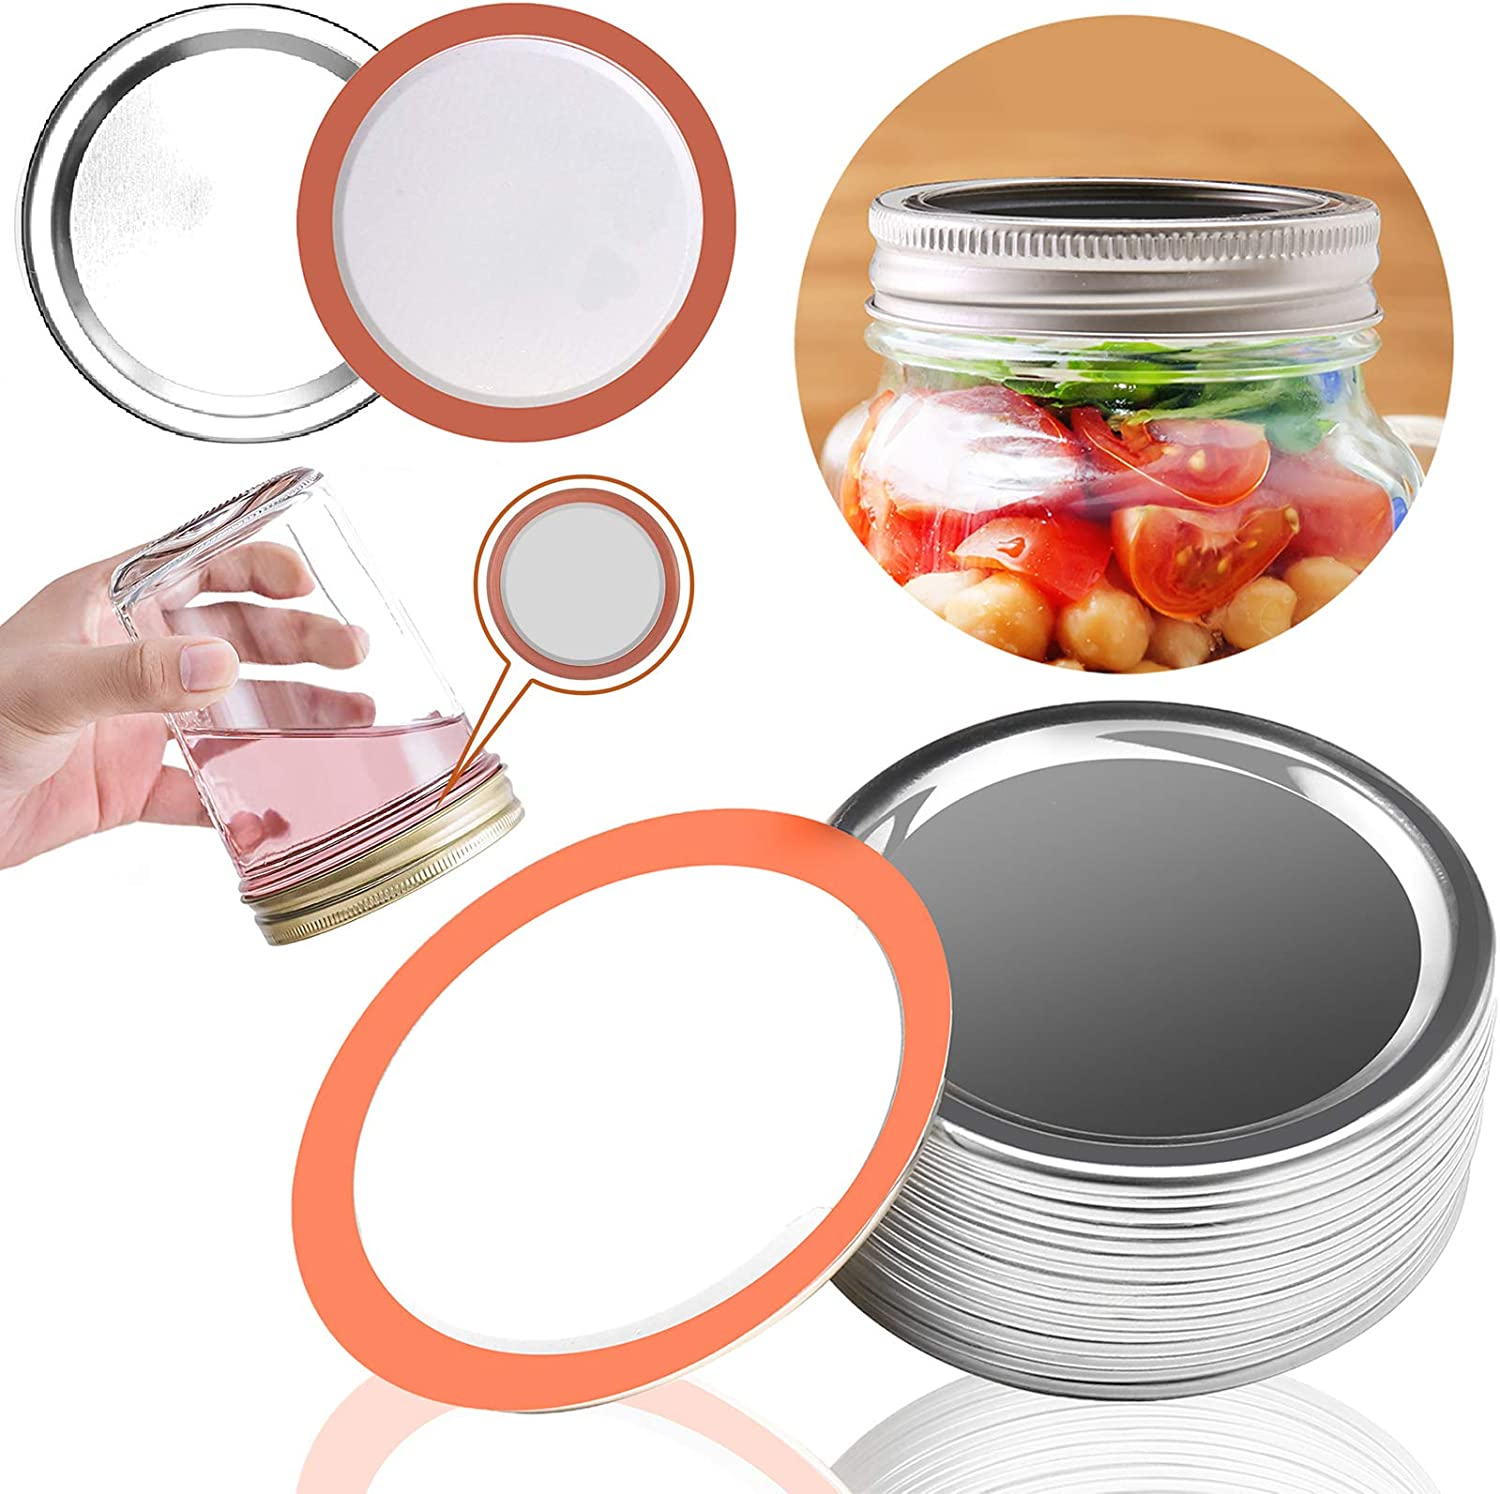 Ball Plastic Leak Proof Storage Caps Regular Mouth Canning Lid Reusable 24-Pack